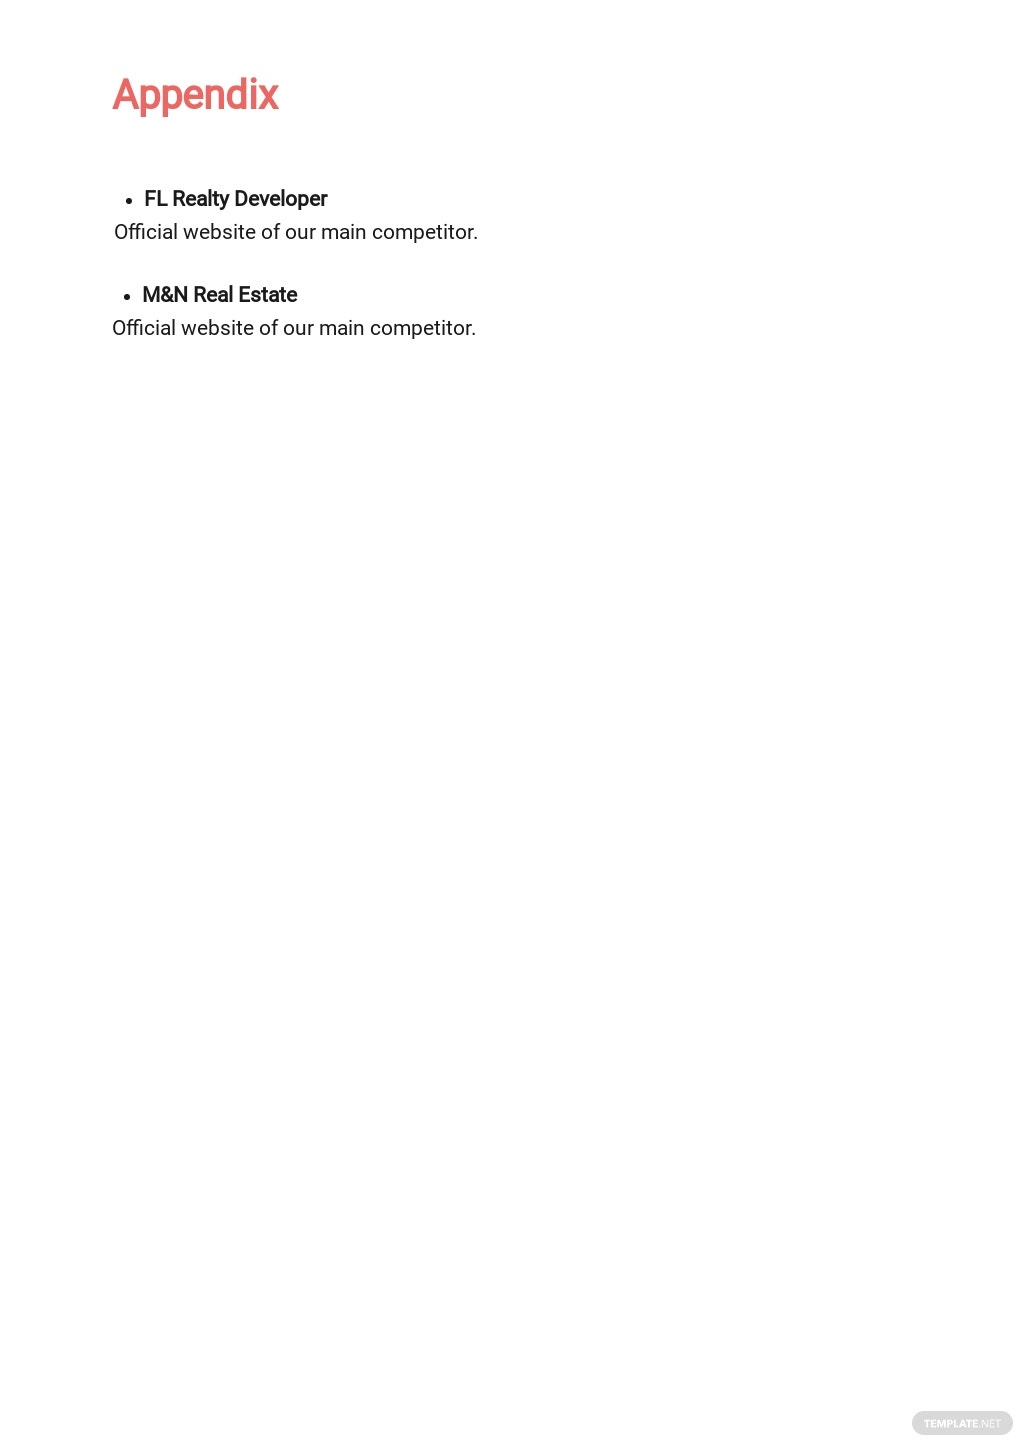 Free Commercial Real Estate Business Plan Template 9.jpe